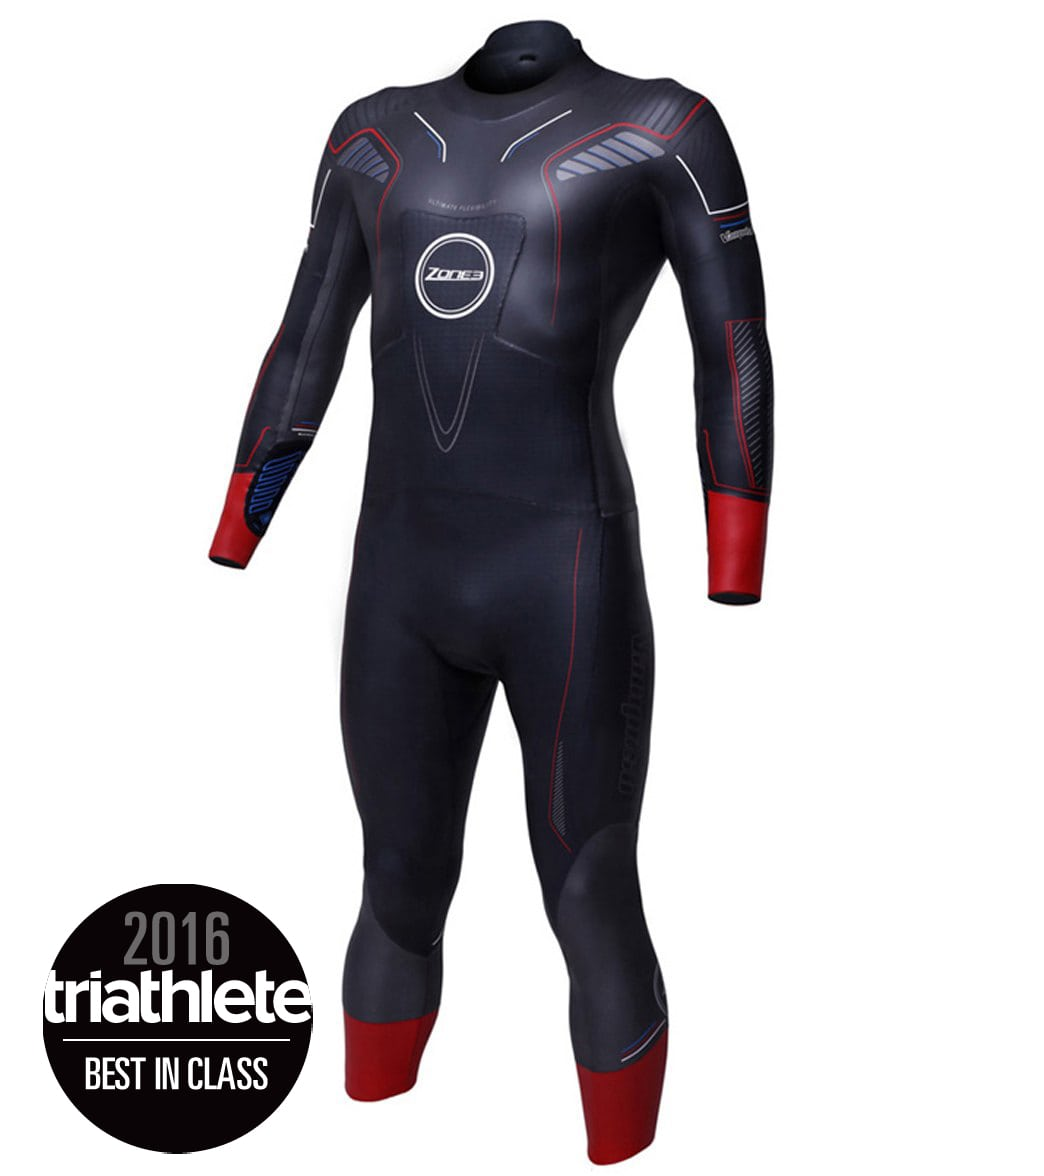 155a779c9d Zone 3 Men's Vanquish Fullsleeve Triathlon Wetsuit at SwimOutlet.com - Free  Shipping